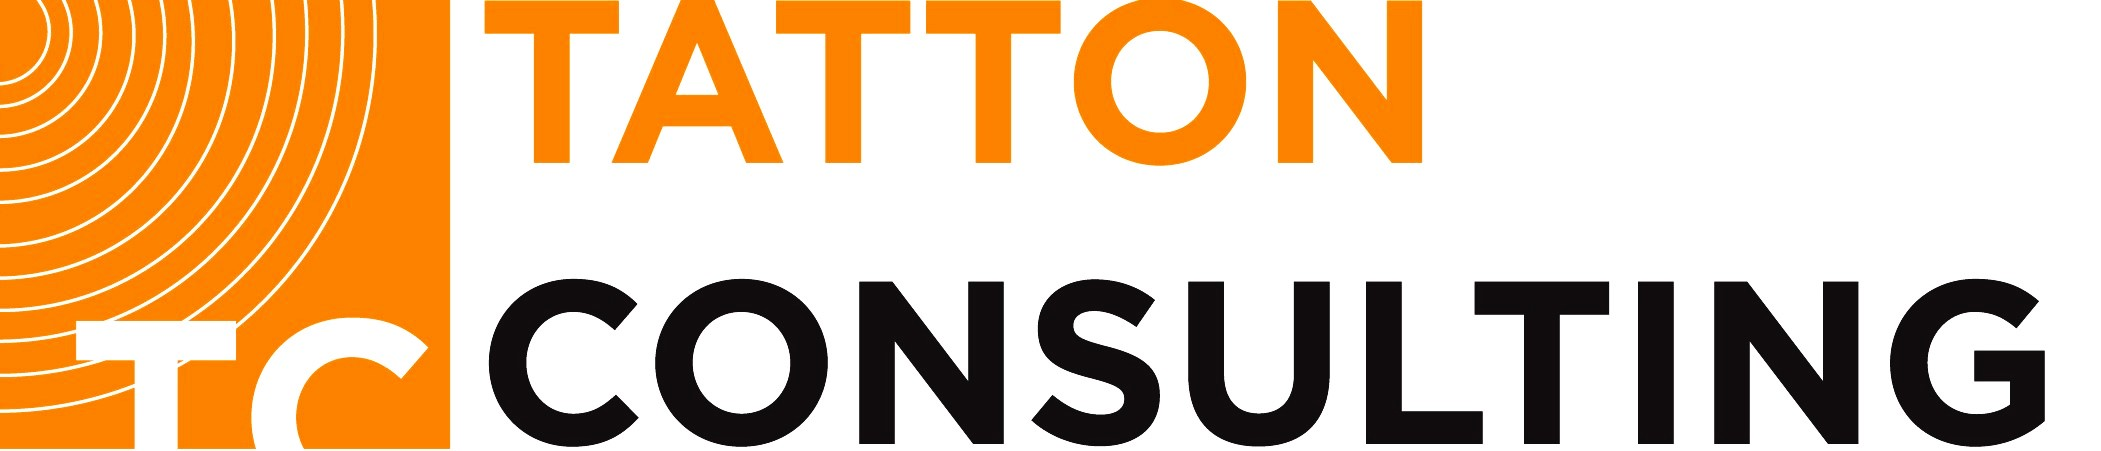 Tatton consulting 1-002